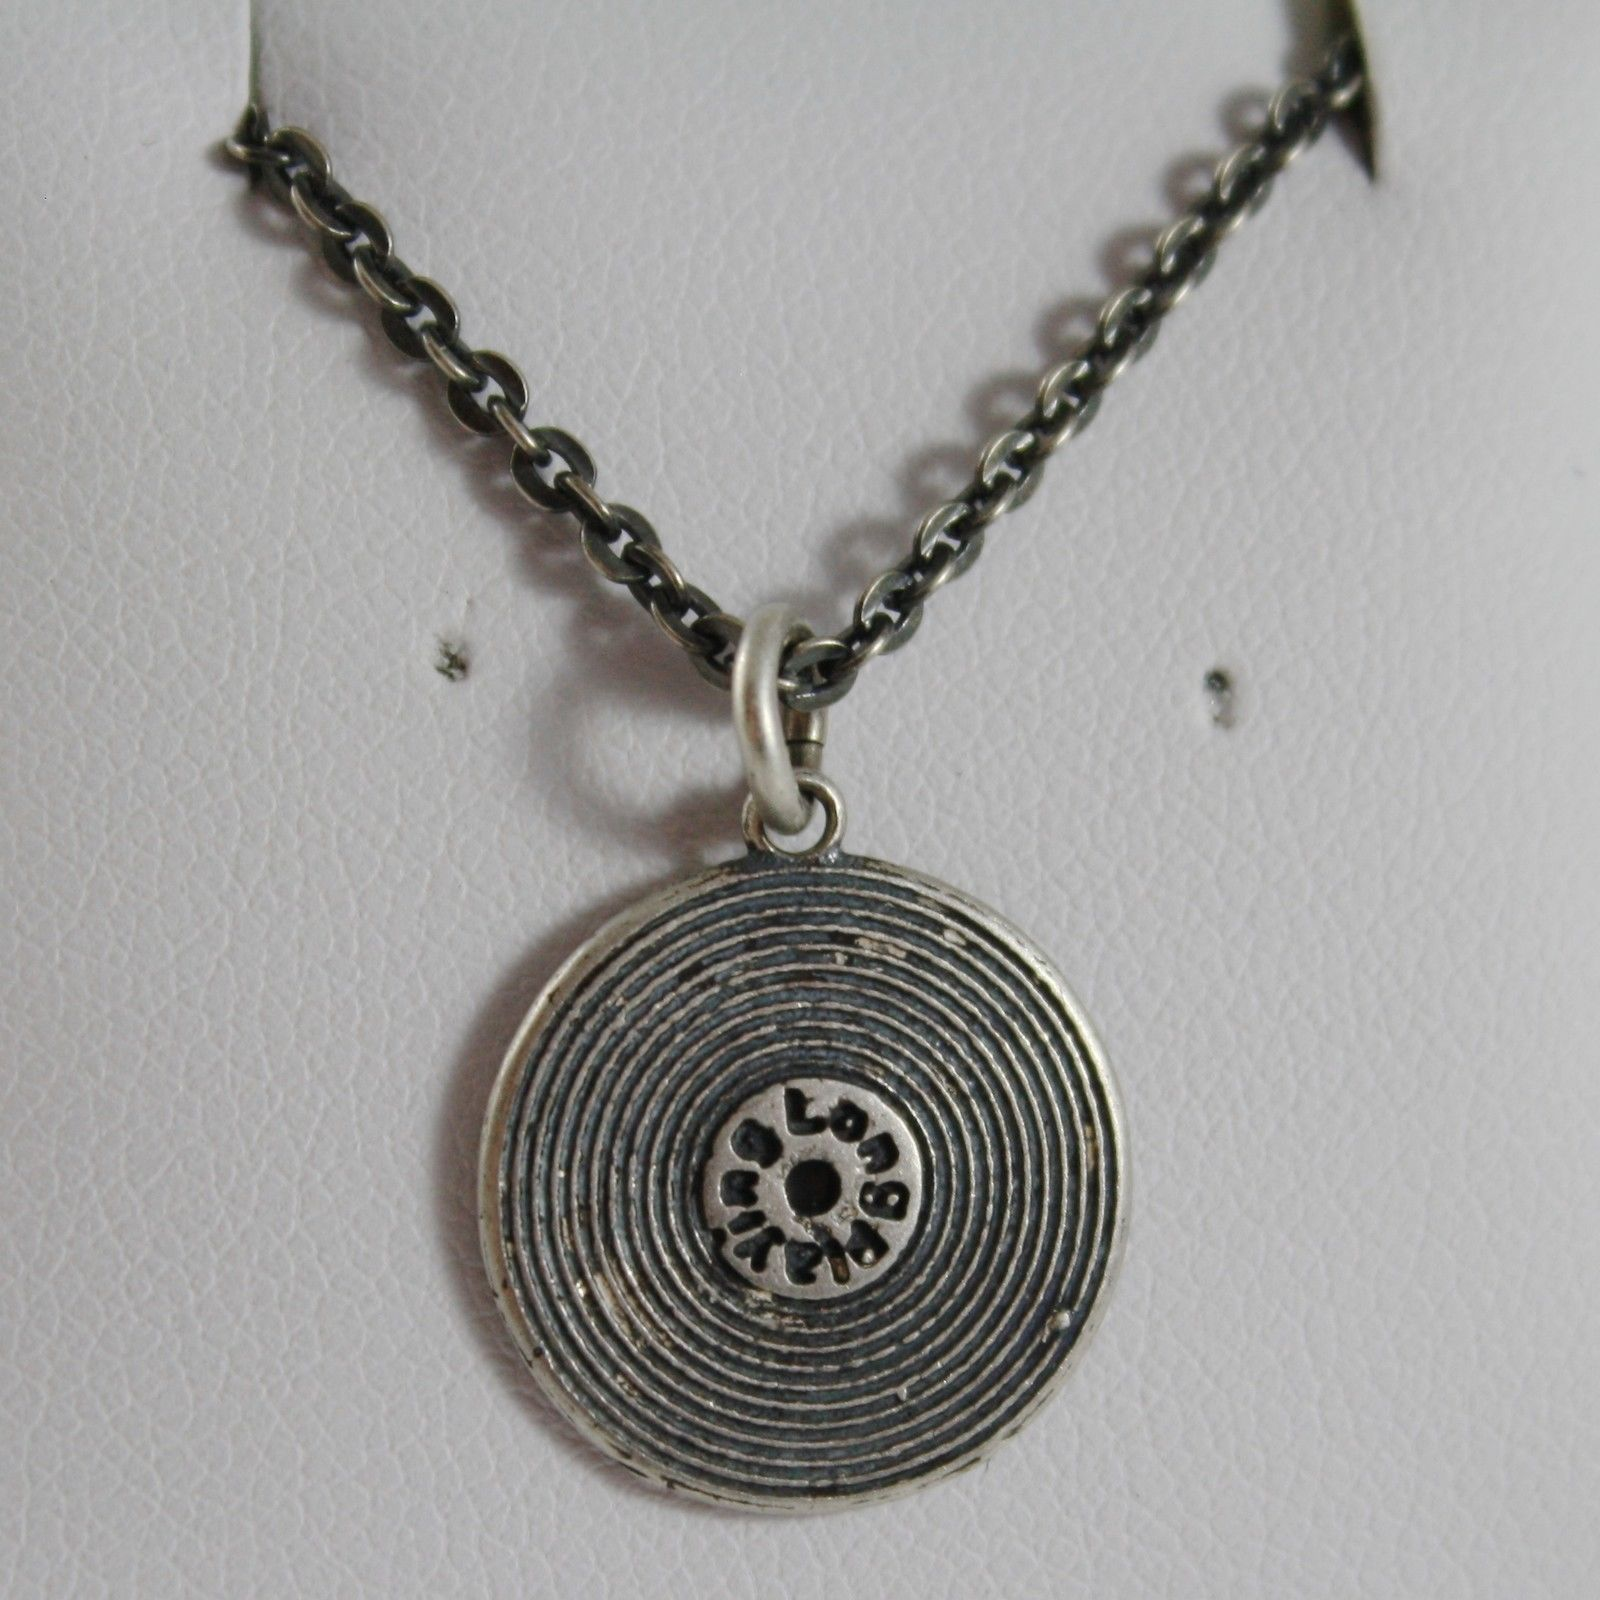 925 STERLING SILVER NECKLACE BURNISHED PENDANT DISC VINYL VINTAGE MADE IN ITALY